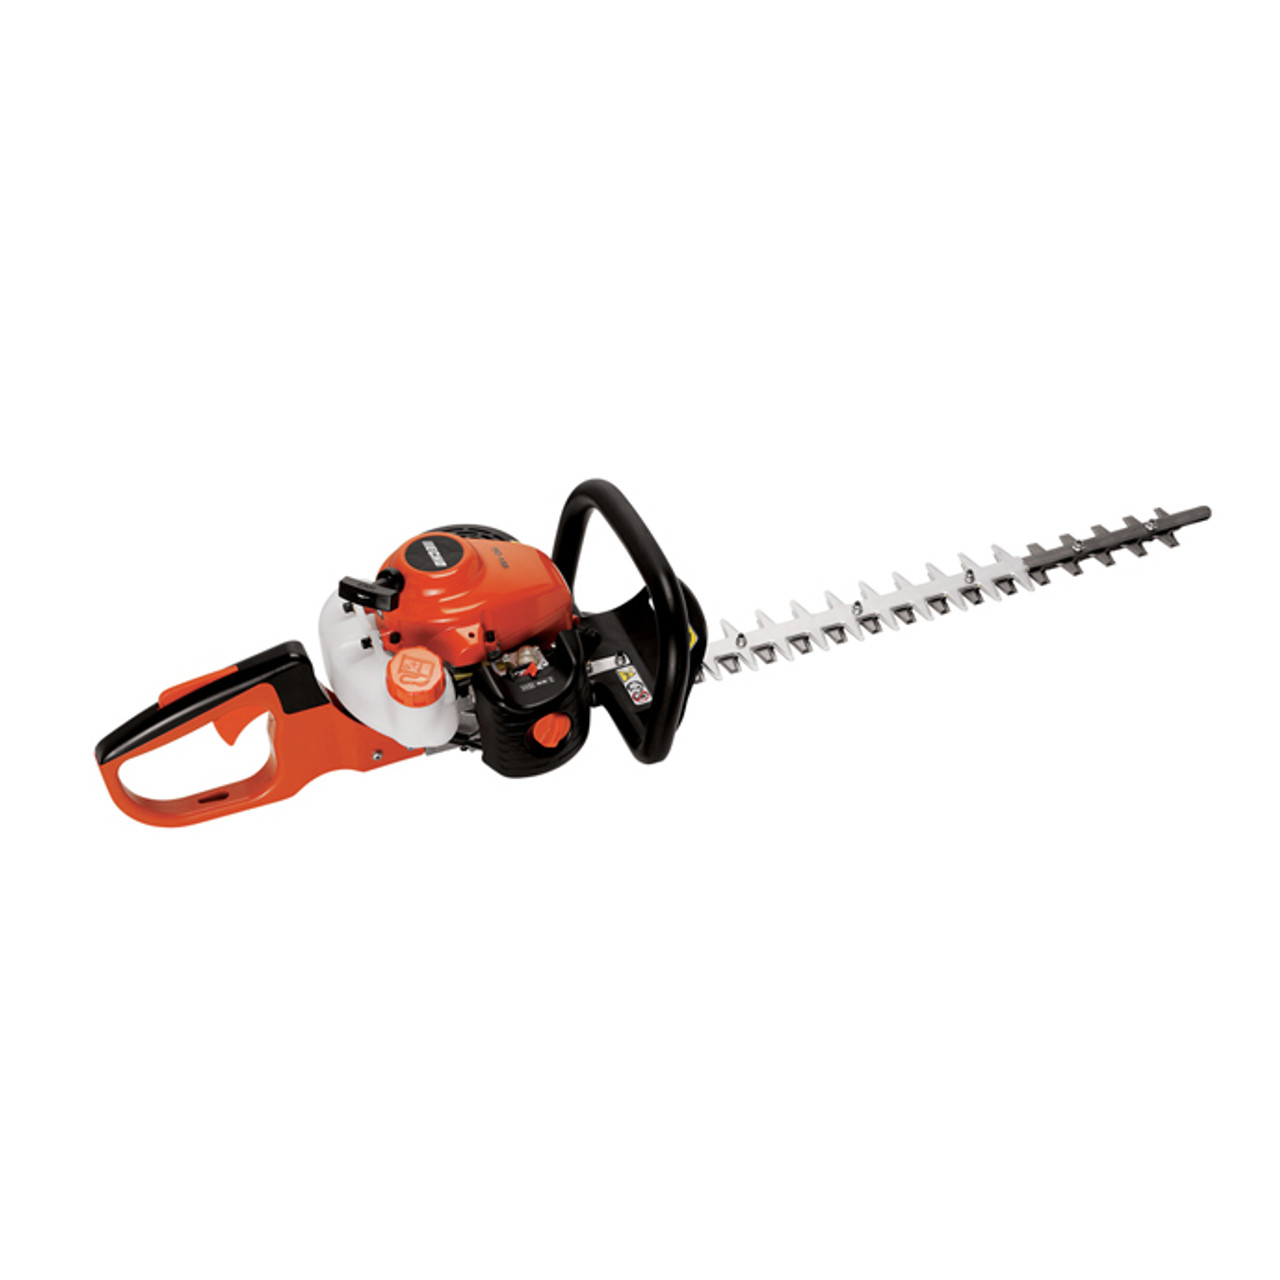 """ECHO HC-155 21.2cc Hedge Trimmer w/ 24"""" Double-Sided Blades & Easy Start Image"""